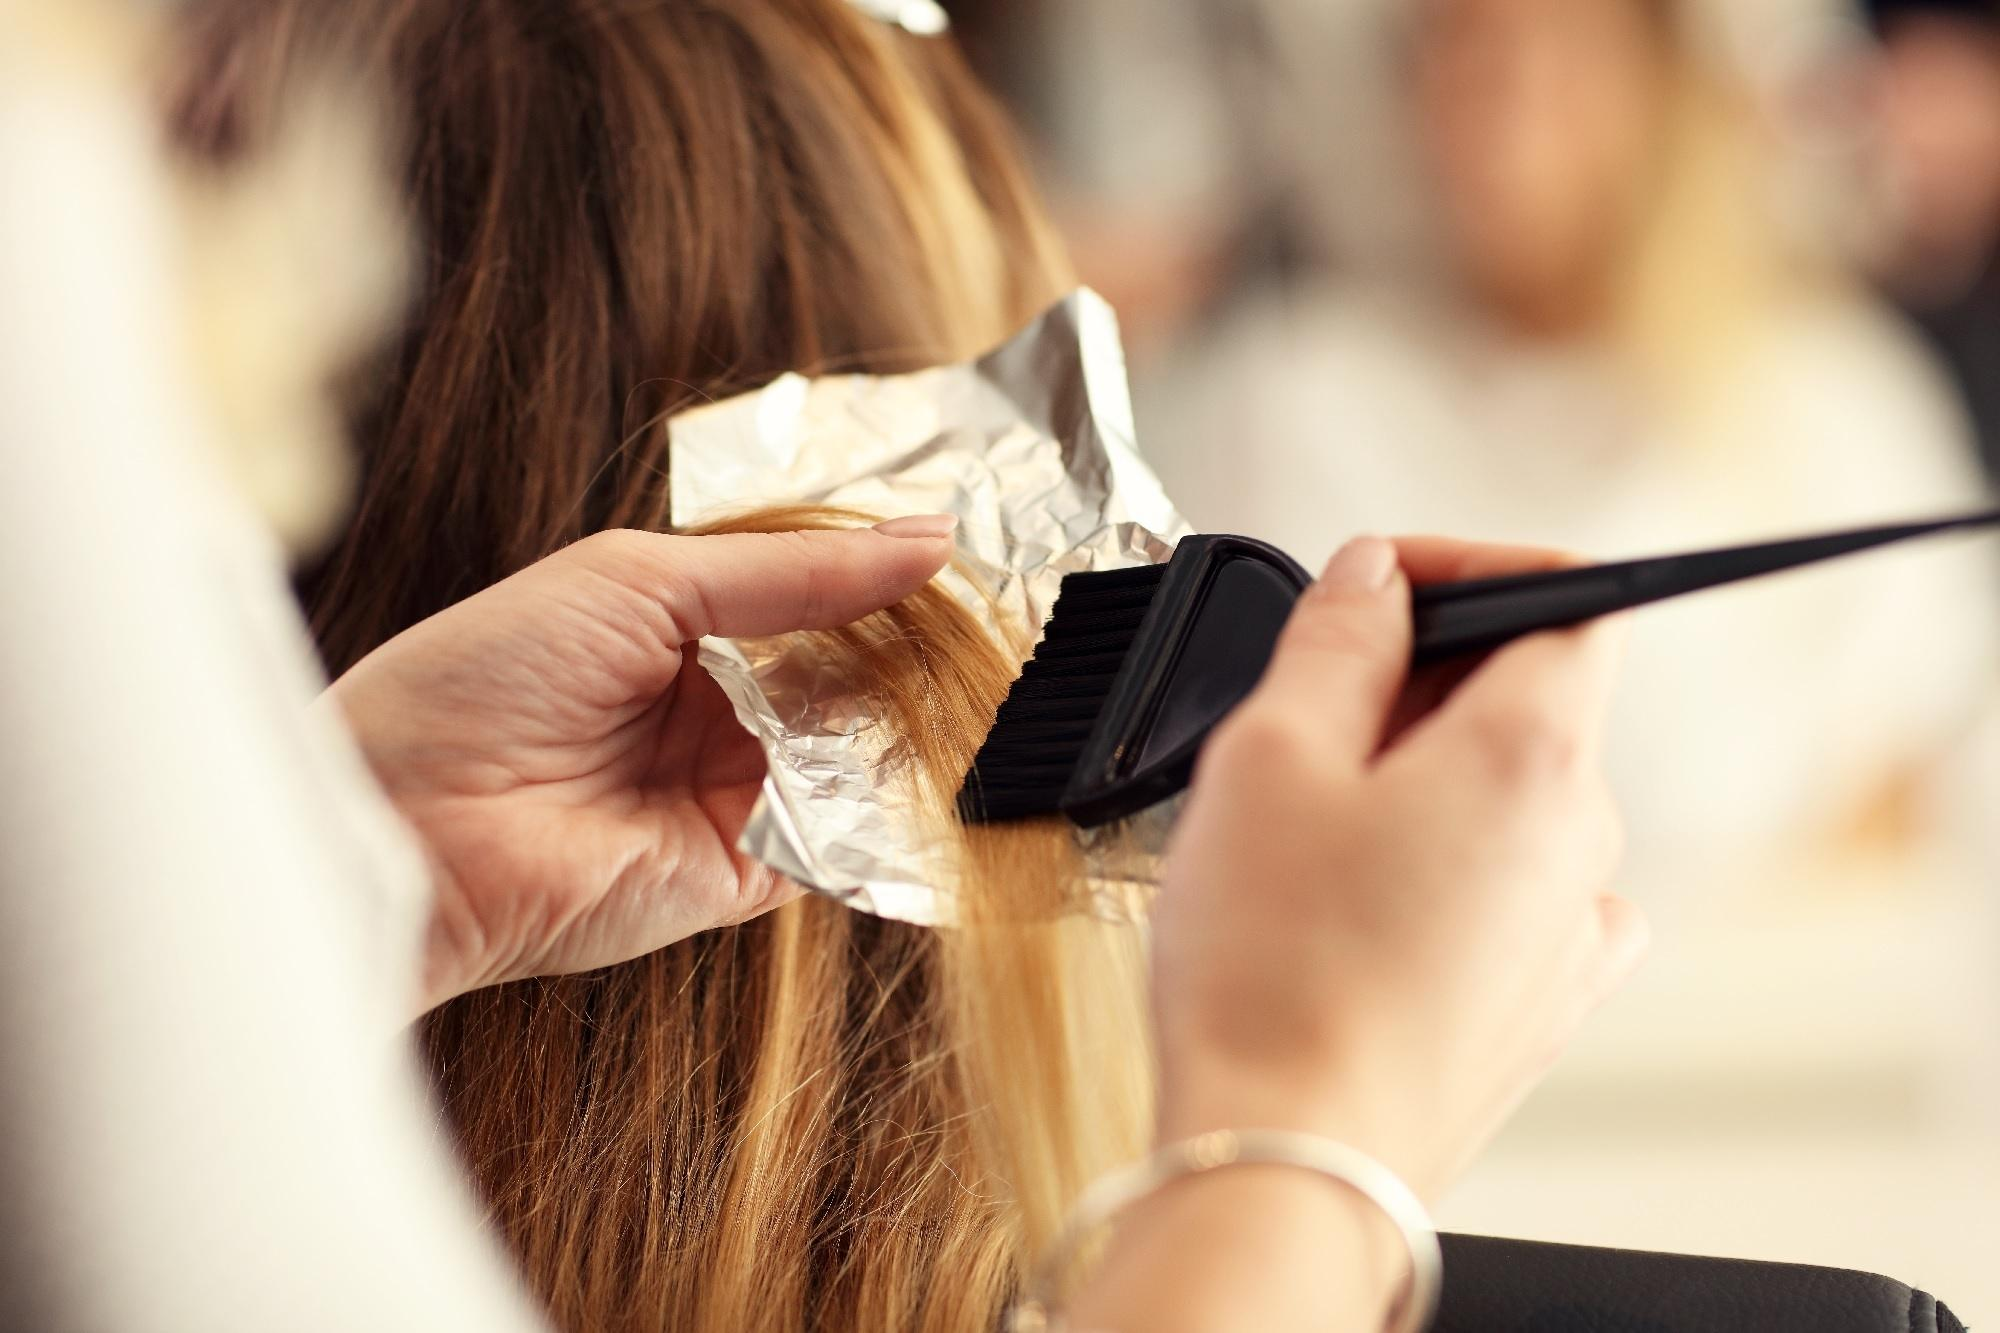 DIY hair color guide: Simple tips and tricks